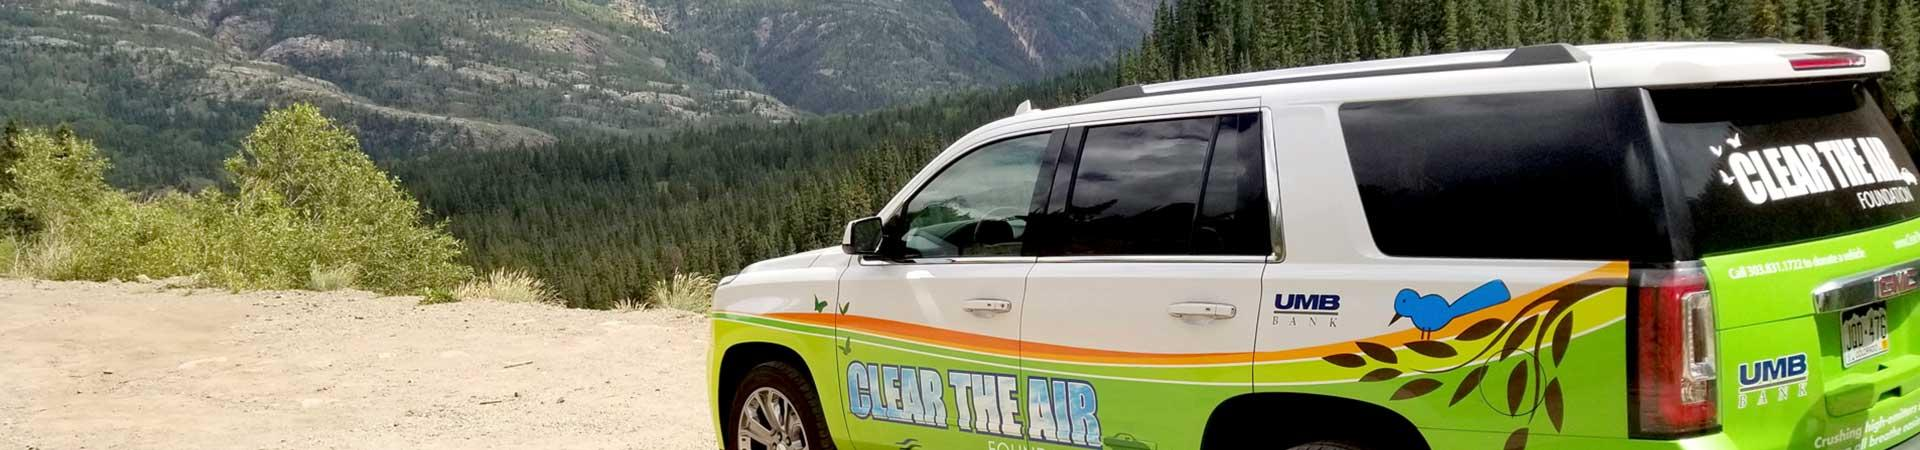 Help cut pollution on Colorado's roads